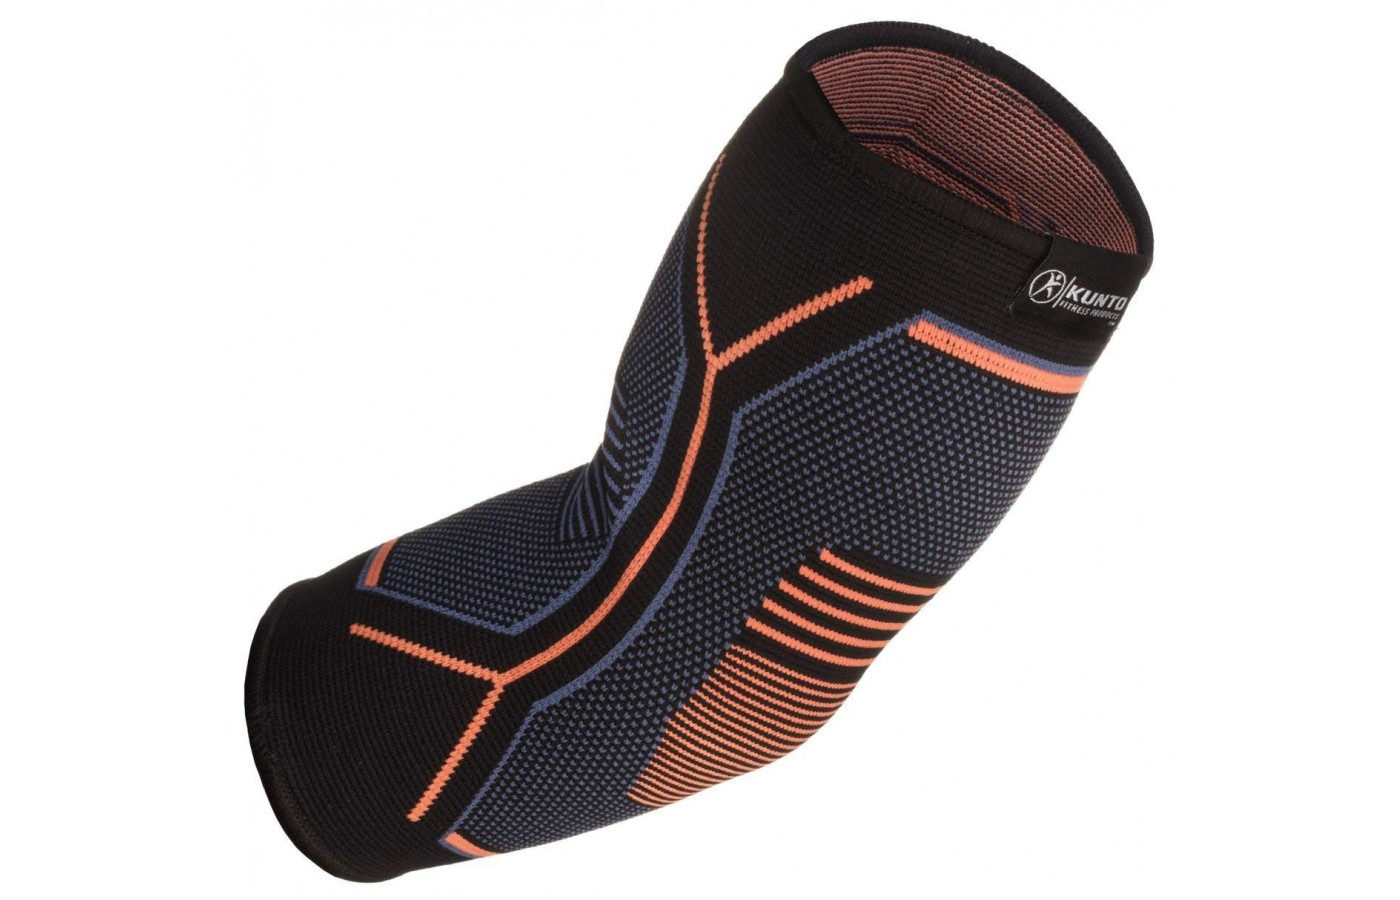 The ergonomic design of the Kunto Fitness Elbow Brace is apparent.